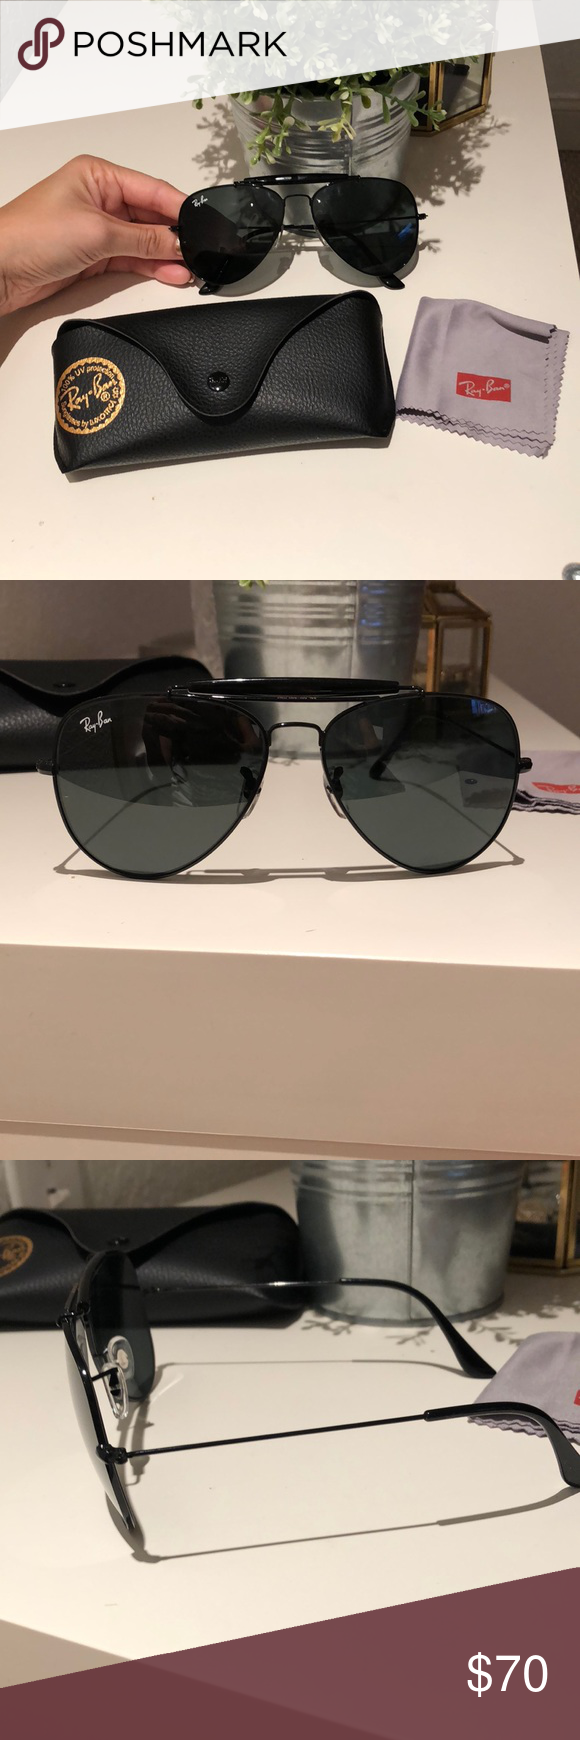 ac47e119b Rayban Aviator sunglasses New without tags Vintage Rayban from the 80s era  with slim black metal frame with Double Bridge Metal and black lenses Comes  with: ...